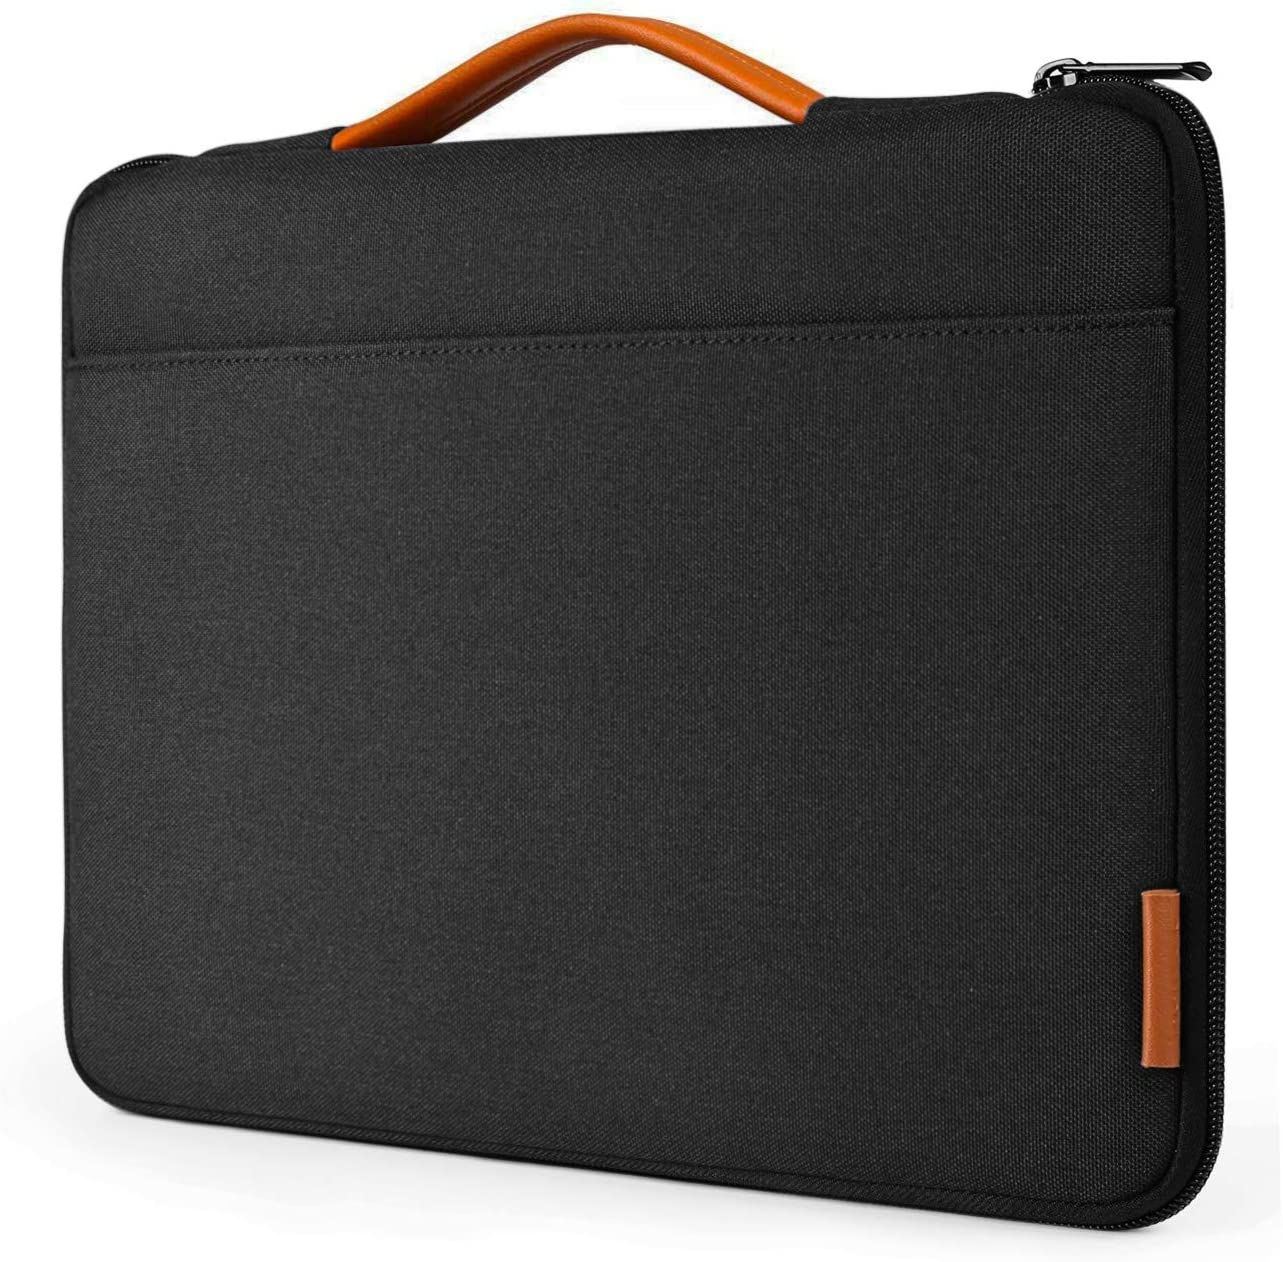 Inateck 13-13.3 Inch Laptop Case Bag Compatible 13.3 Inch MacBook Air 2010-2020/MacBook Pro Retina 13'' 2012-2015, 2020/2019/2018/2017/2016,Surface Pro 3/4/5/6/7/X, Surface Laptop 2017/2/3 - Black